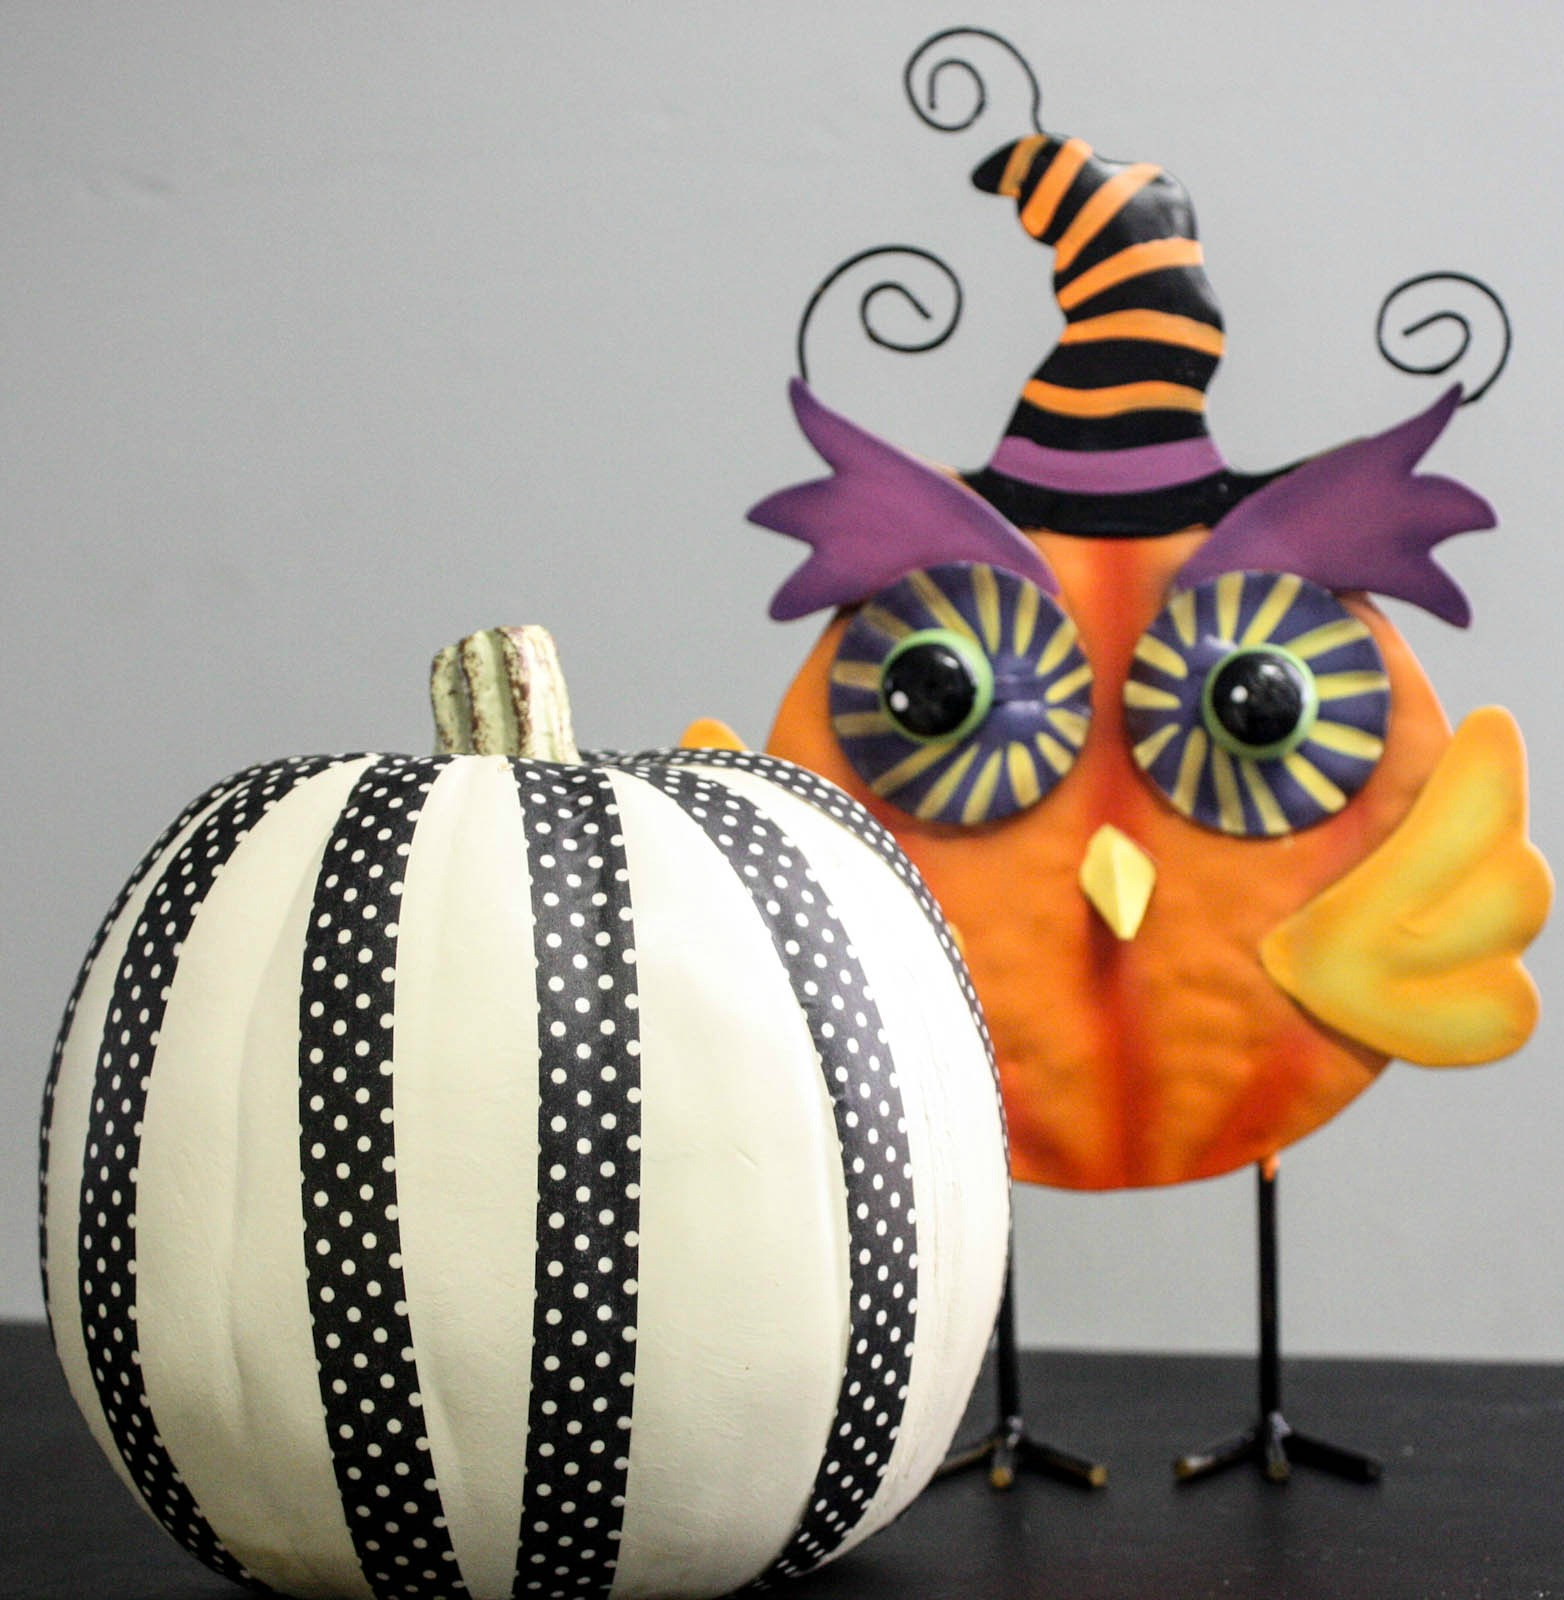 5 Minute Washi Tape Pumpkin